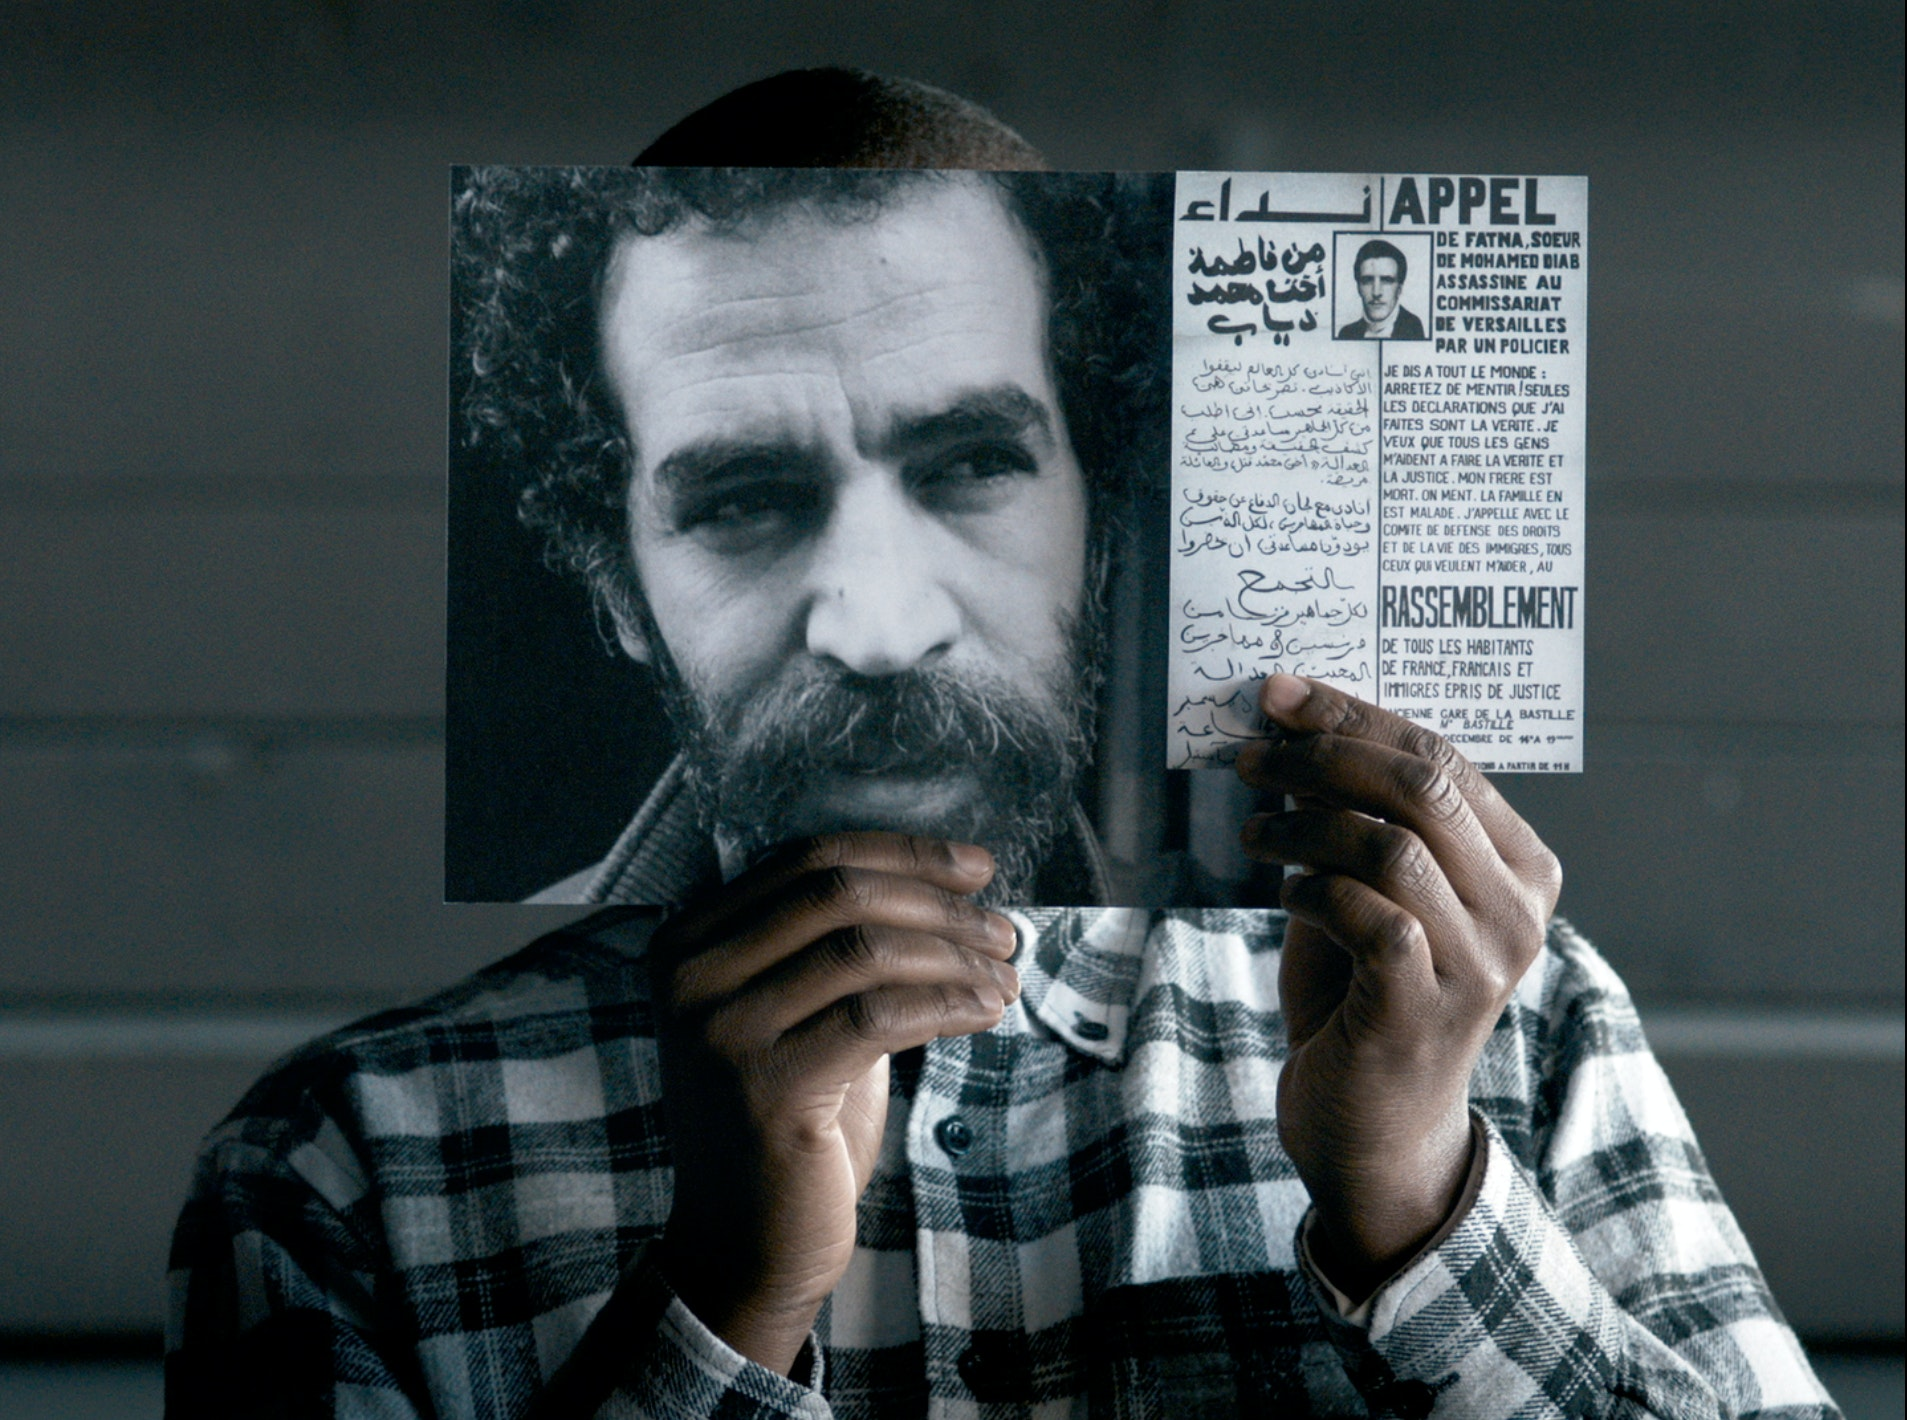 A man seen from the shoulders up holds a photograph of a man's face in front of his own as weel as